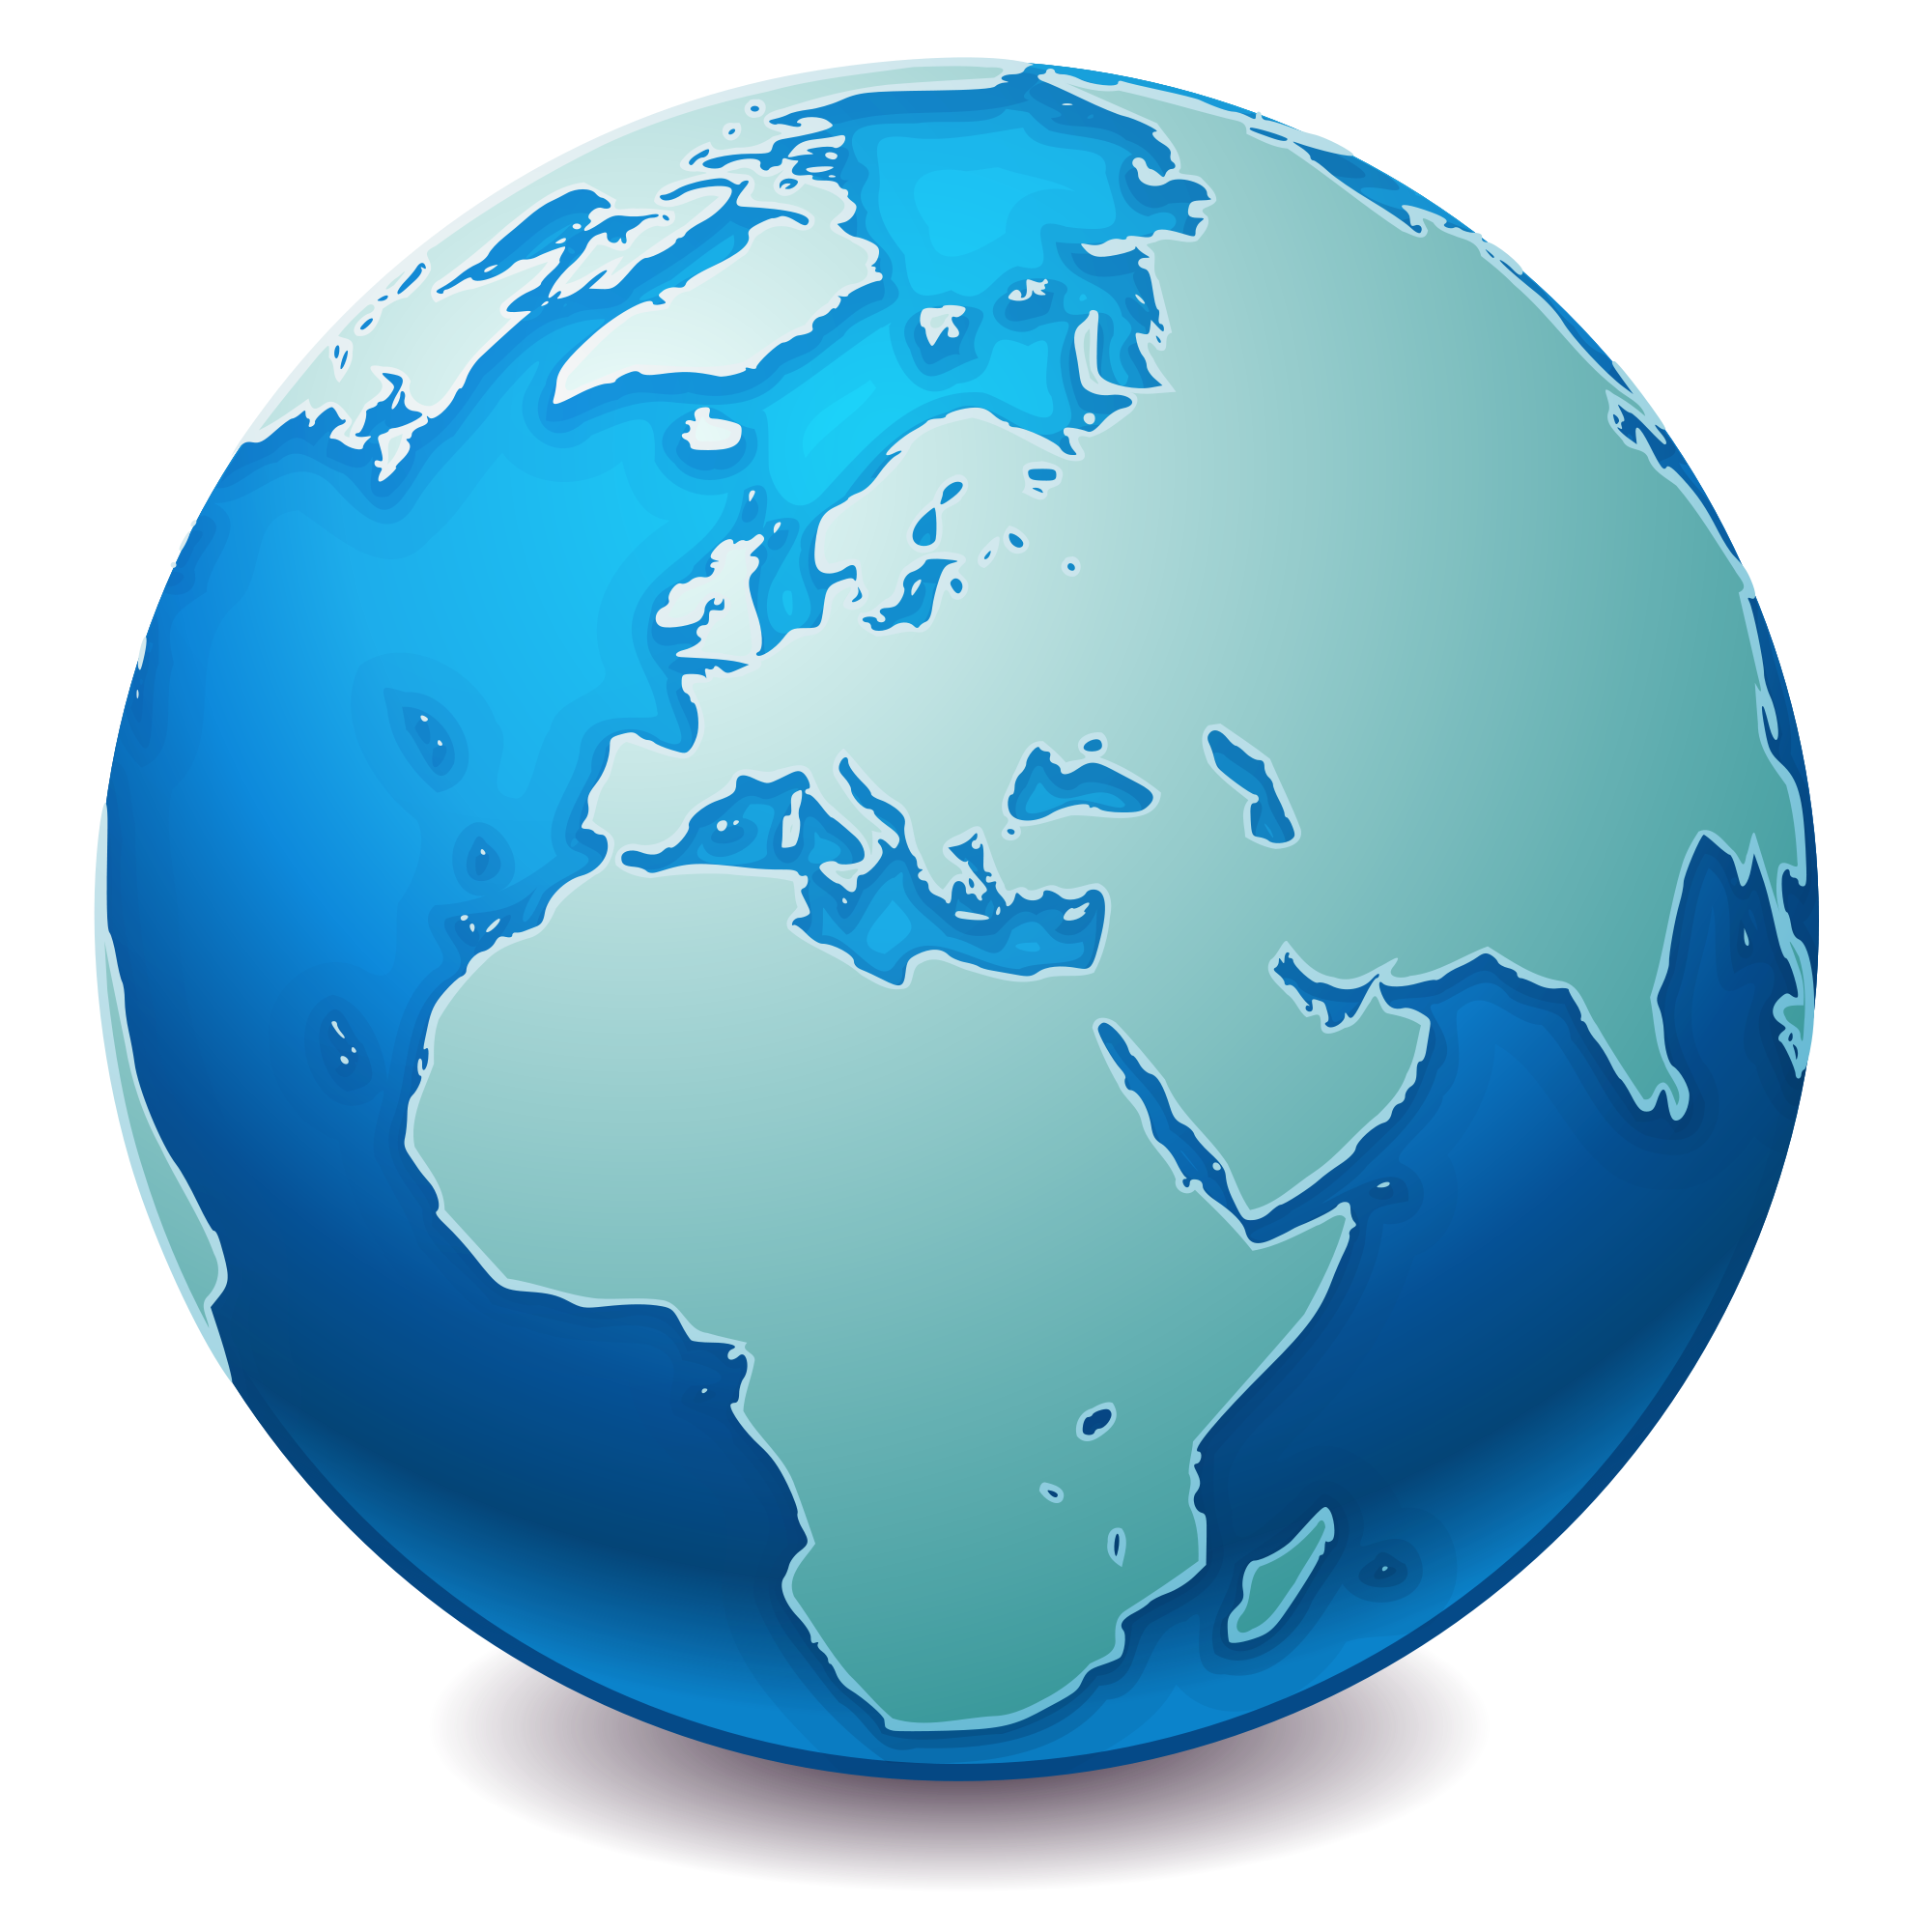 World png image. File erioll svg wikimedia